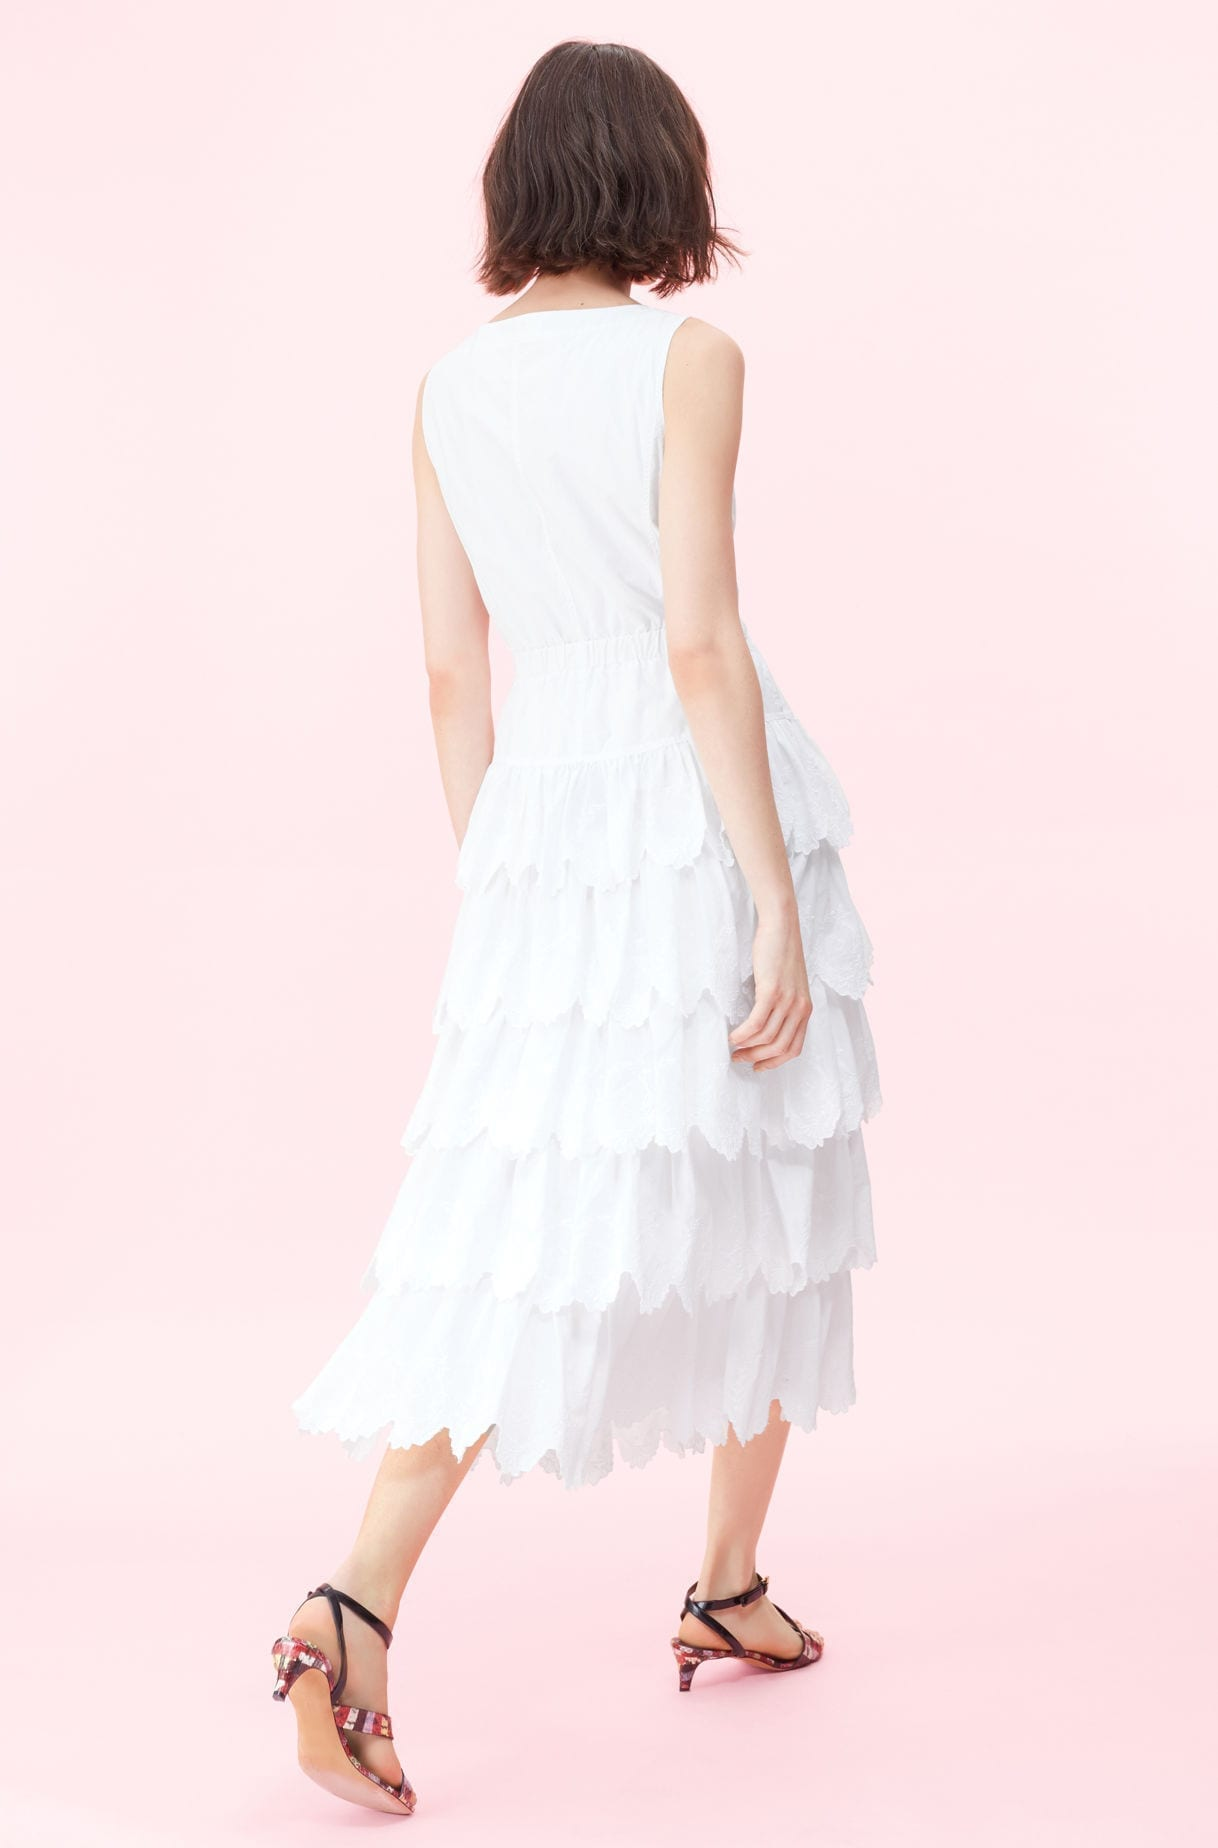 64103bbf5d REBECCA TAYLOR La Vie Mireille Embroidered White Dress - We Select ...